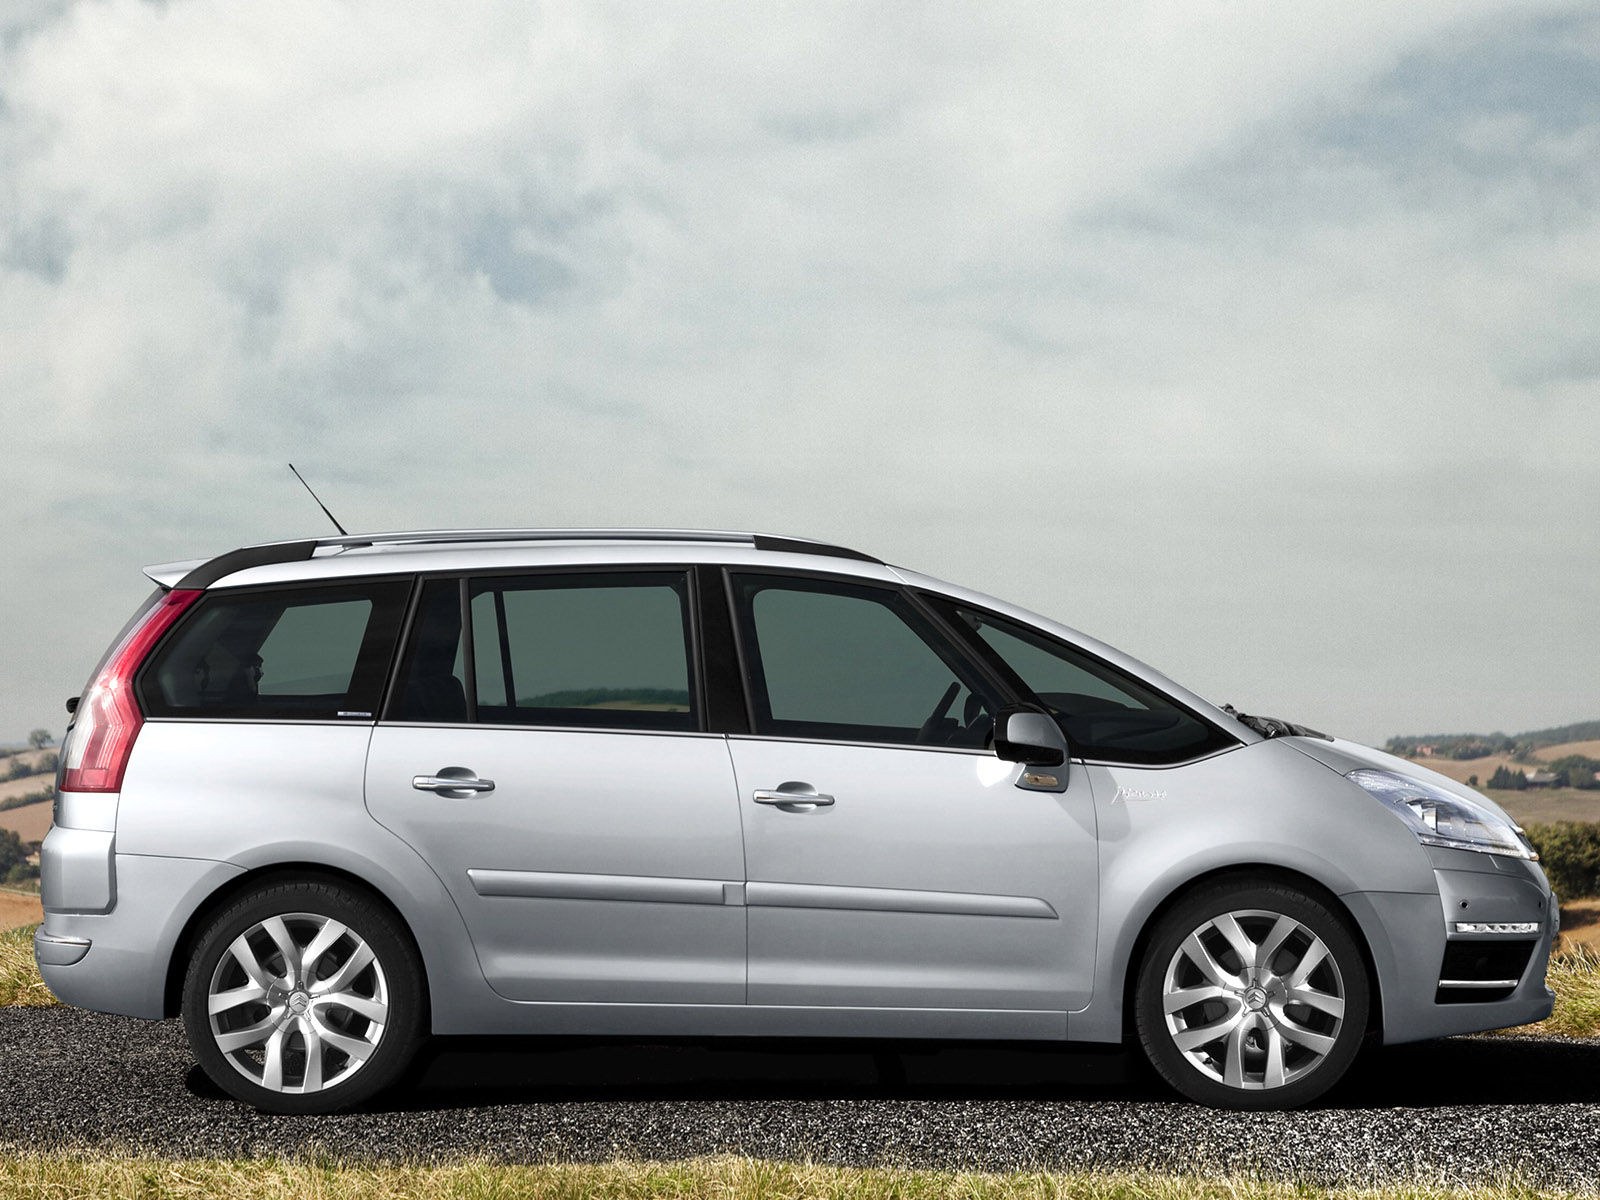 citroen c4 grand picasso 2010 citroen c4 grand picasso 2010 photo 06 car in pictures car